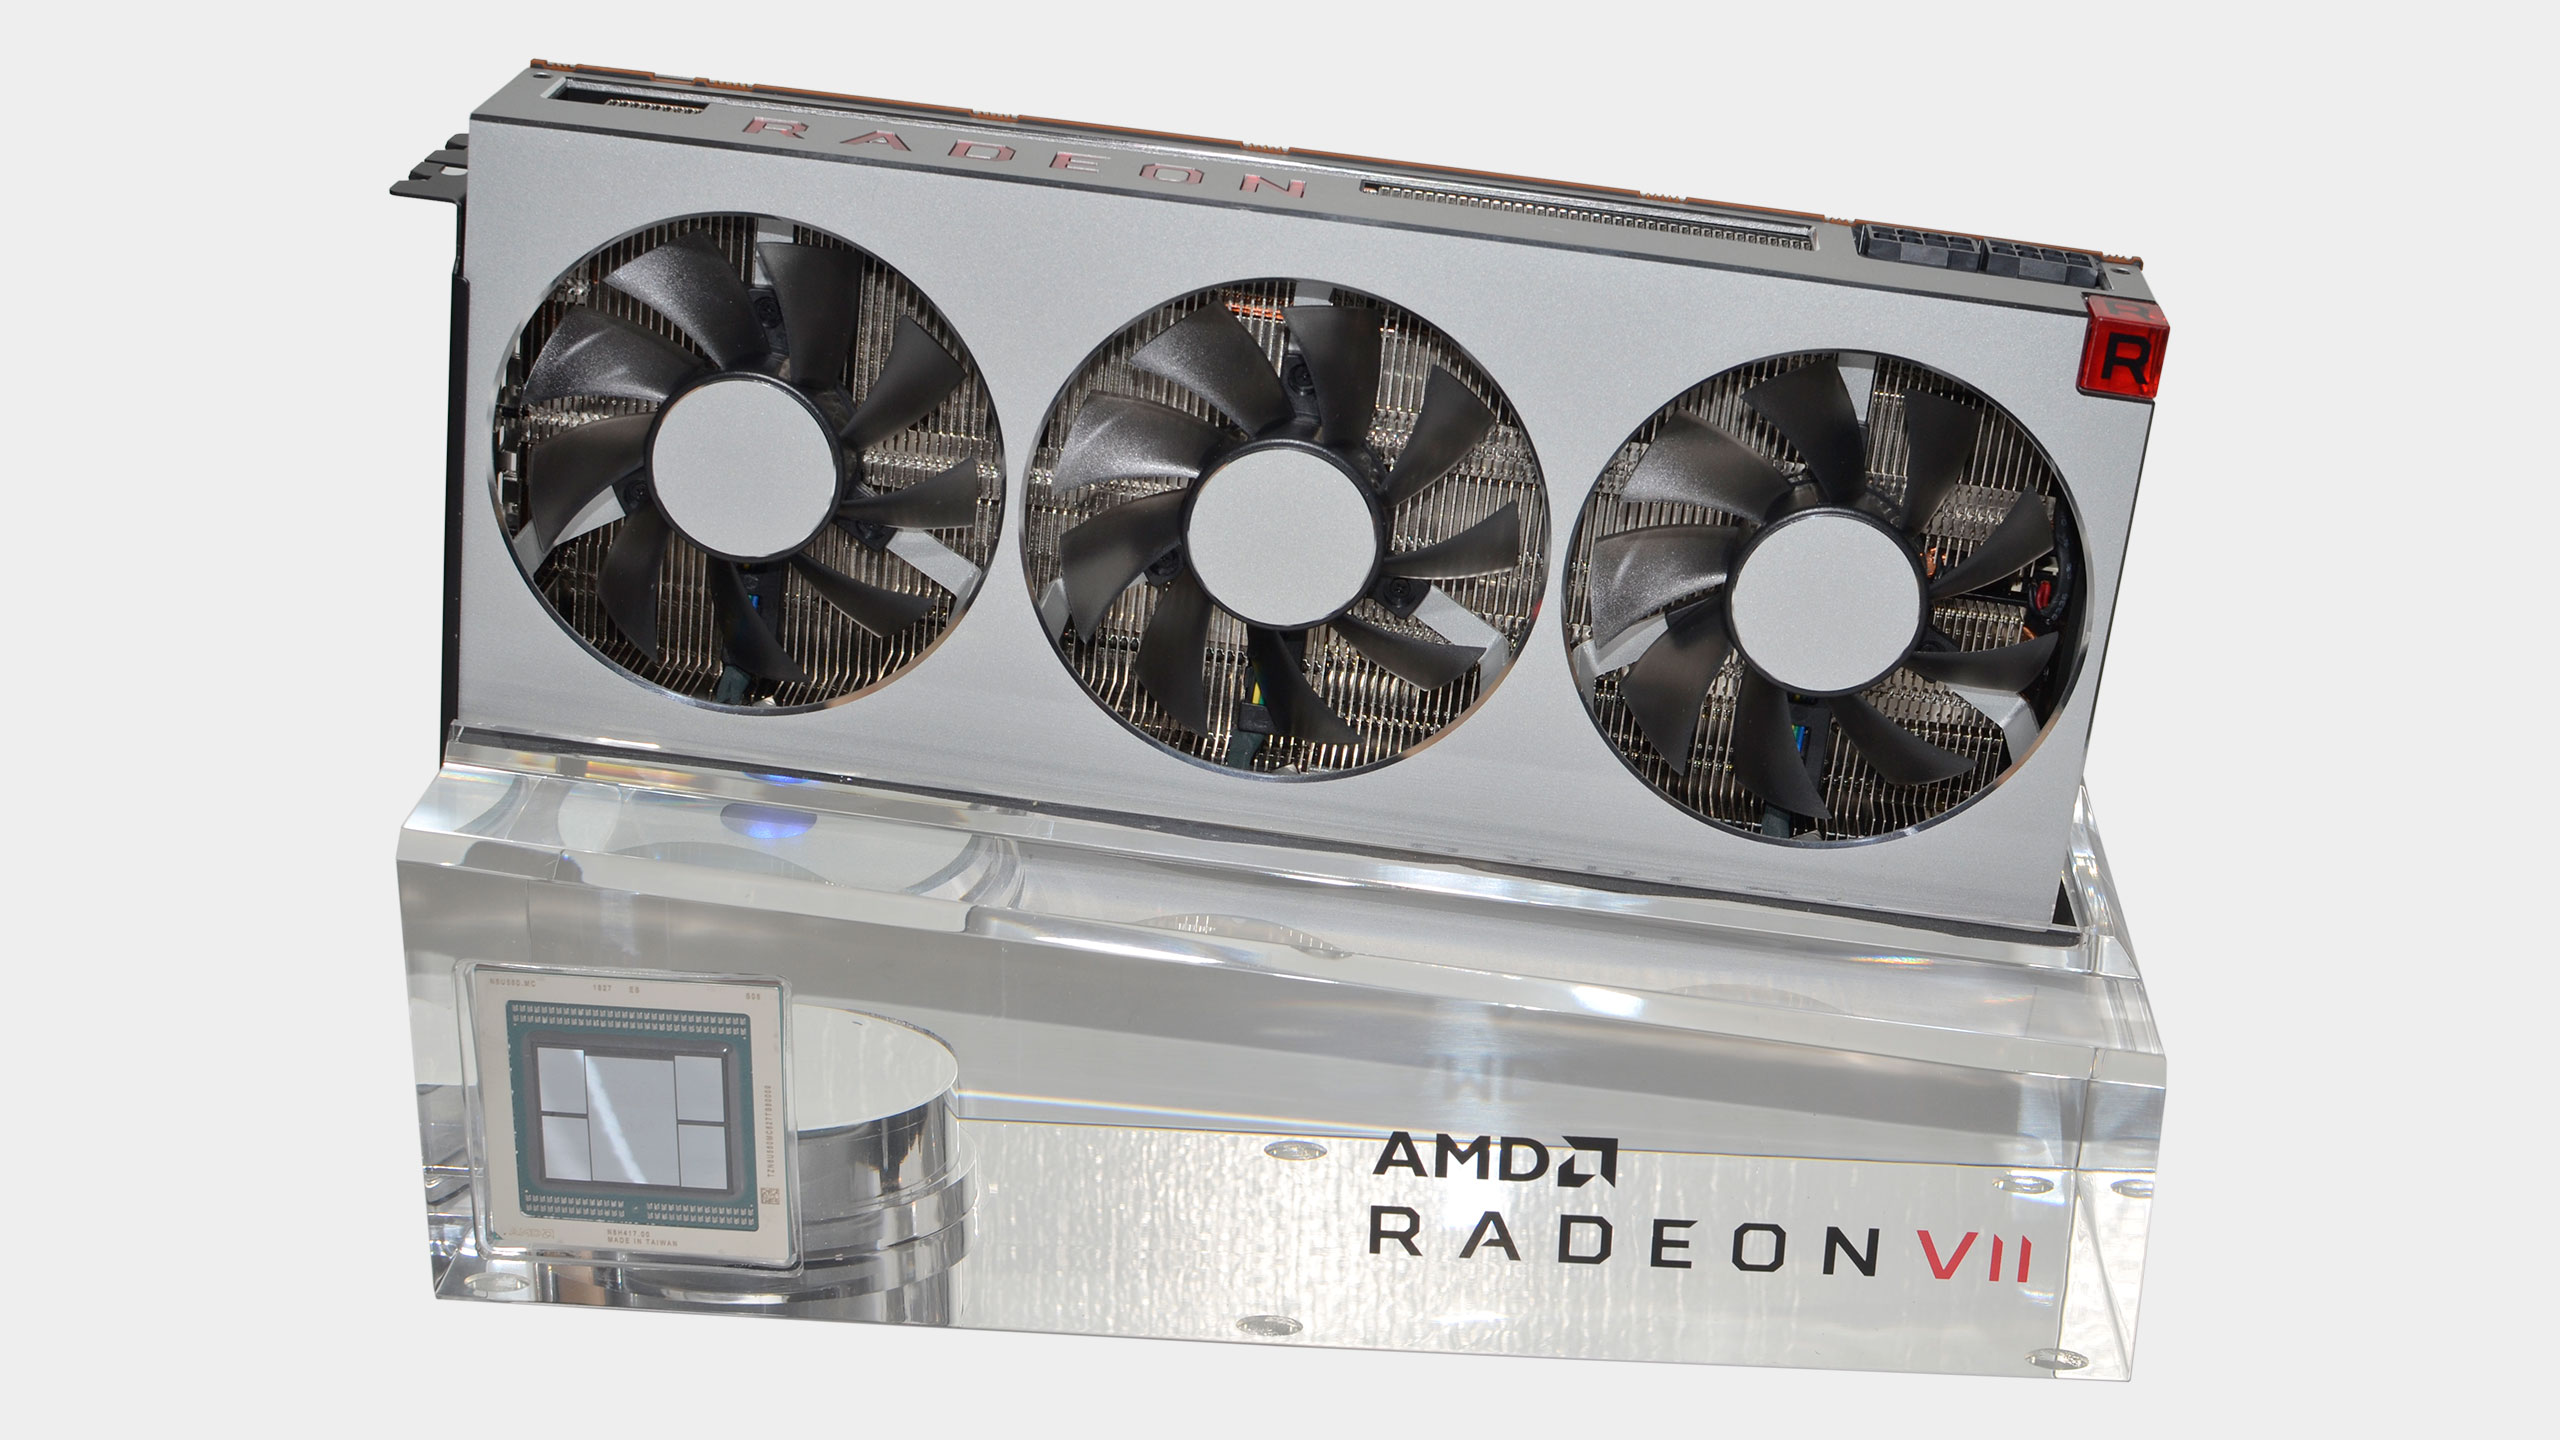 AMD's 2 year old Radeon VII is better for cryptocurrency mining than it ever was for gaming